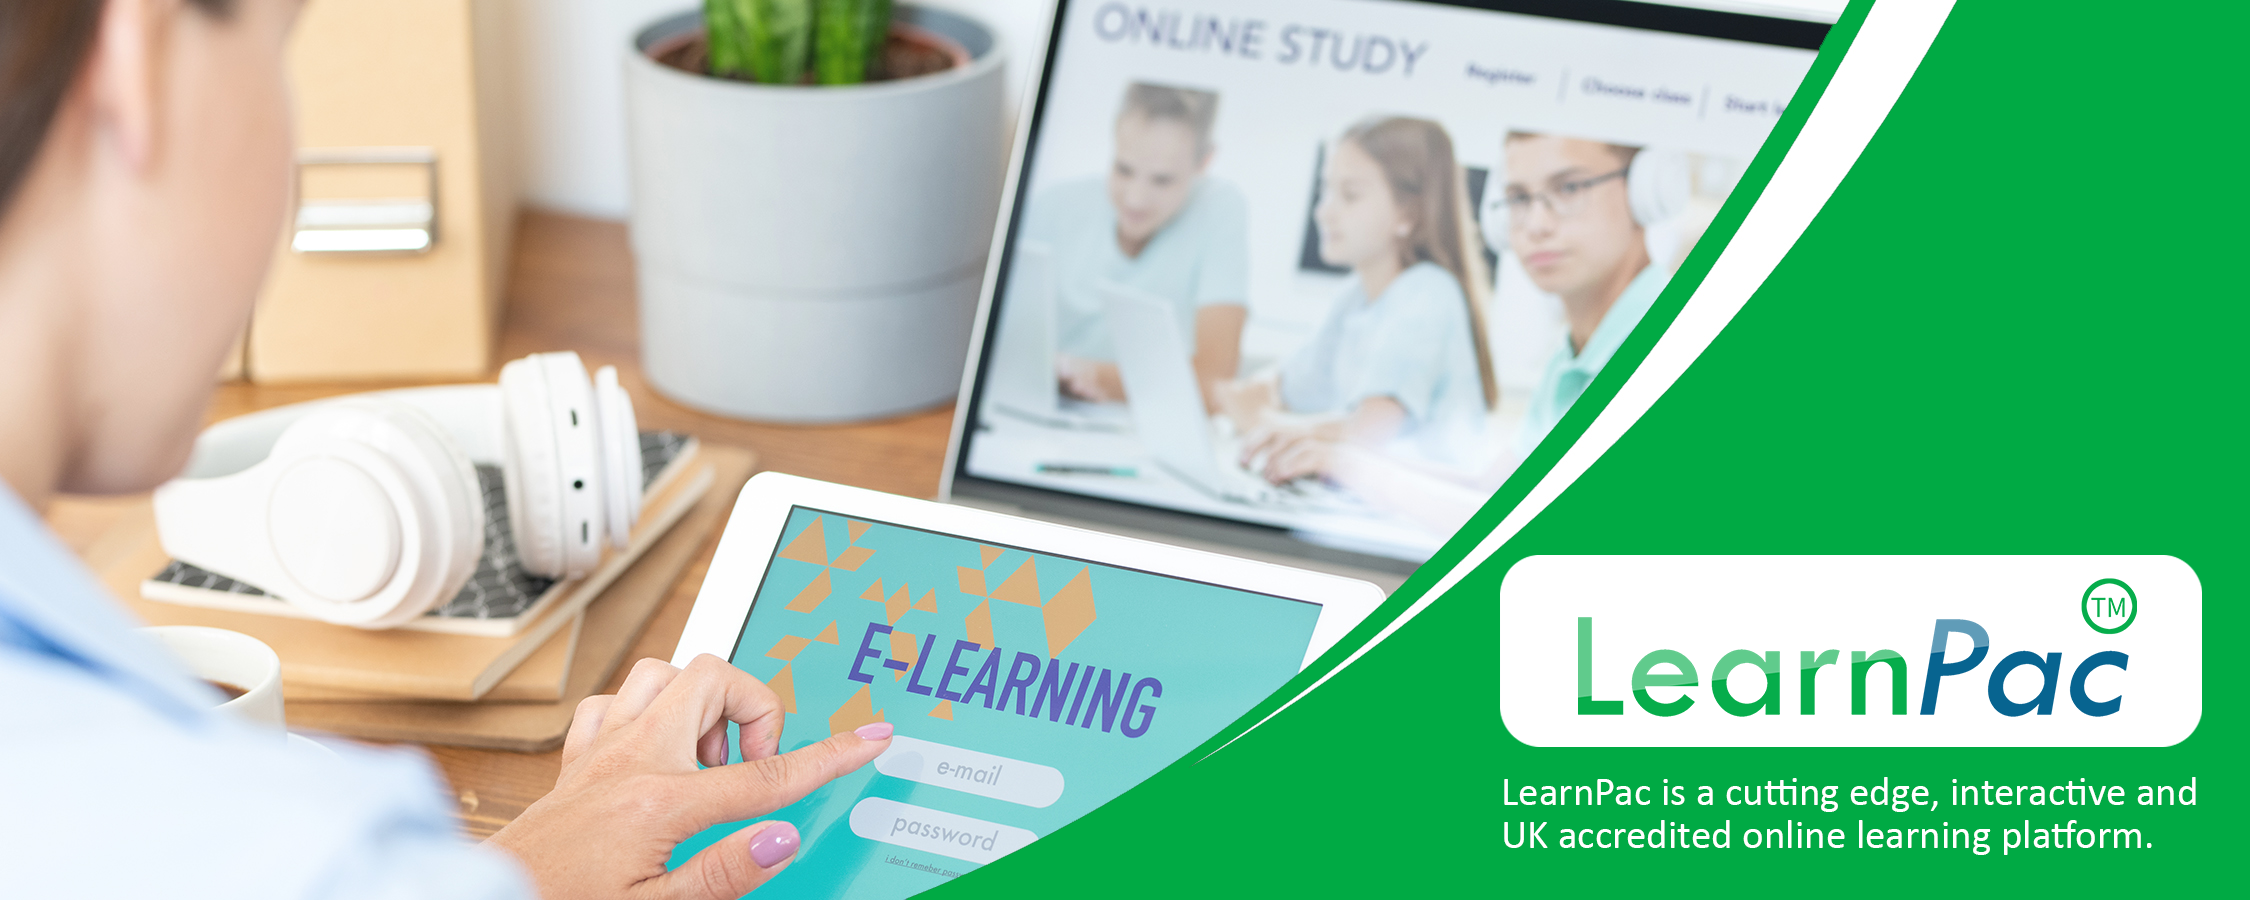 Medication Management for Domiciliary Care - Online Learning Courses - E-Learning Courses - LearnPac Systems UK -